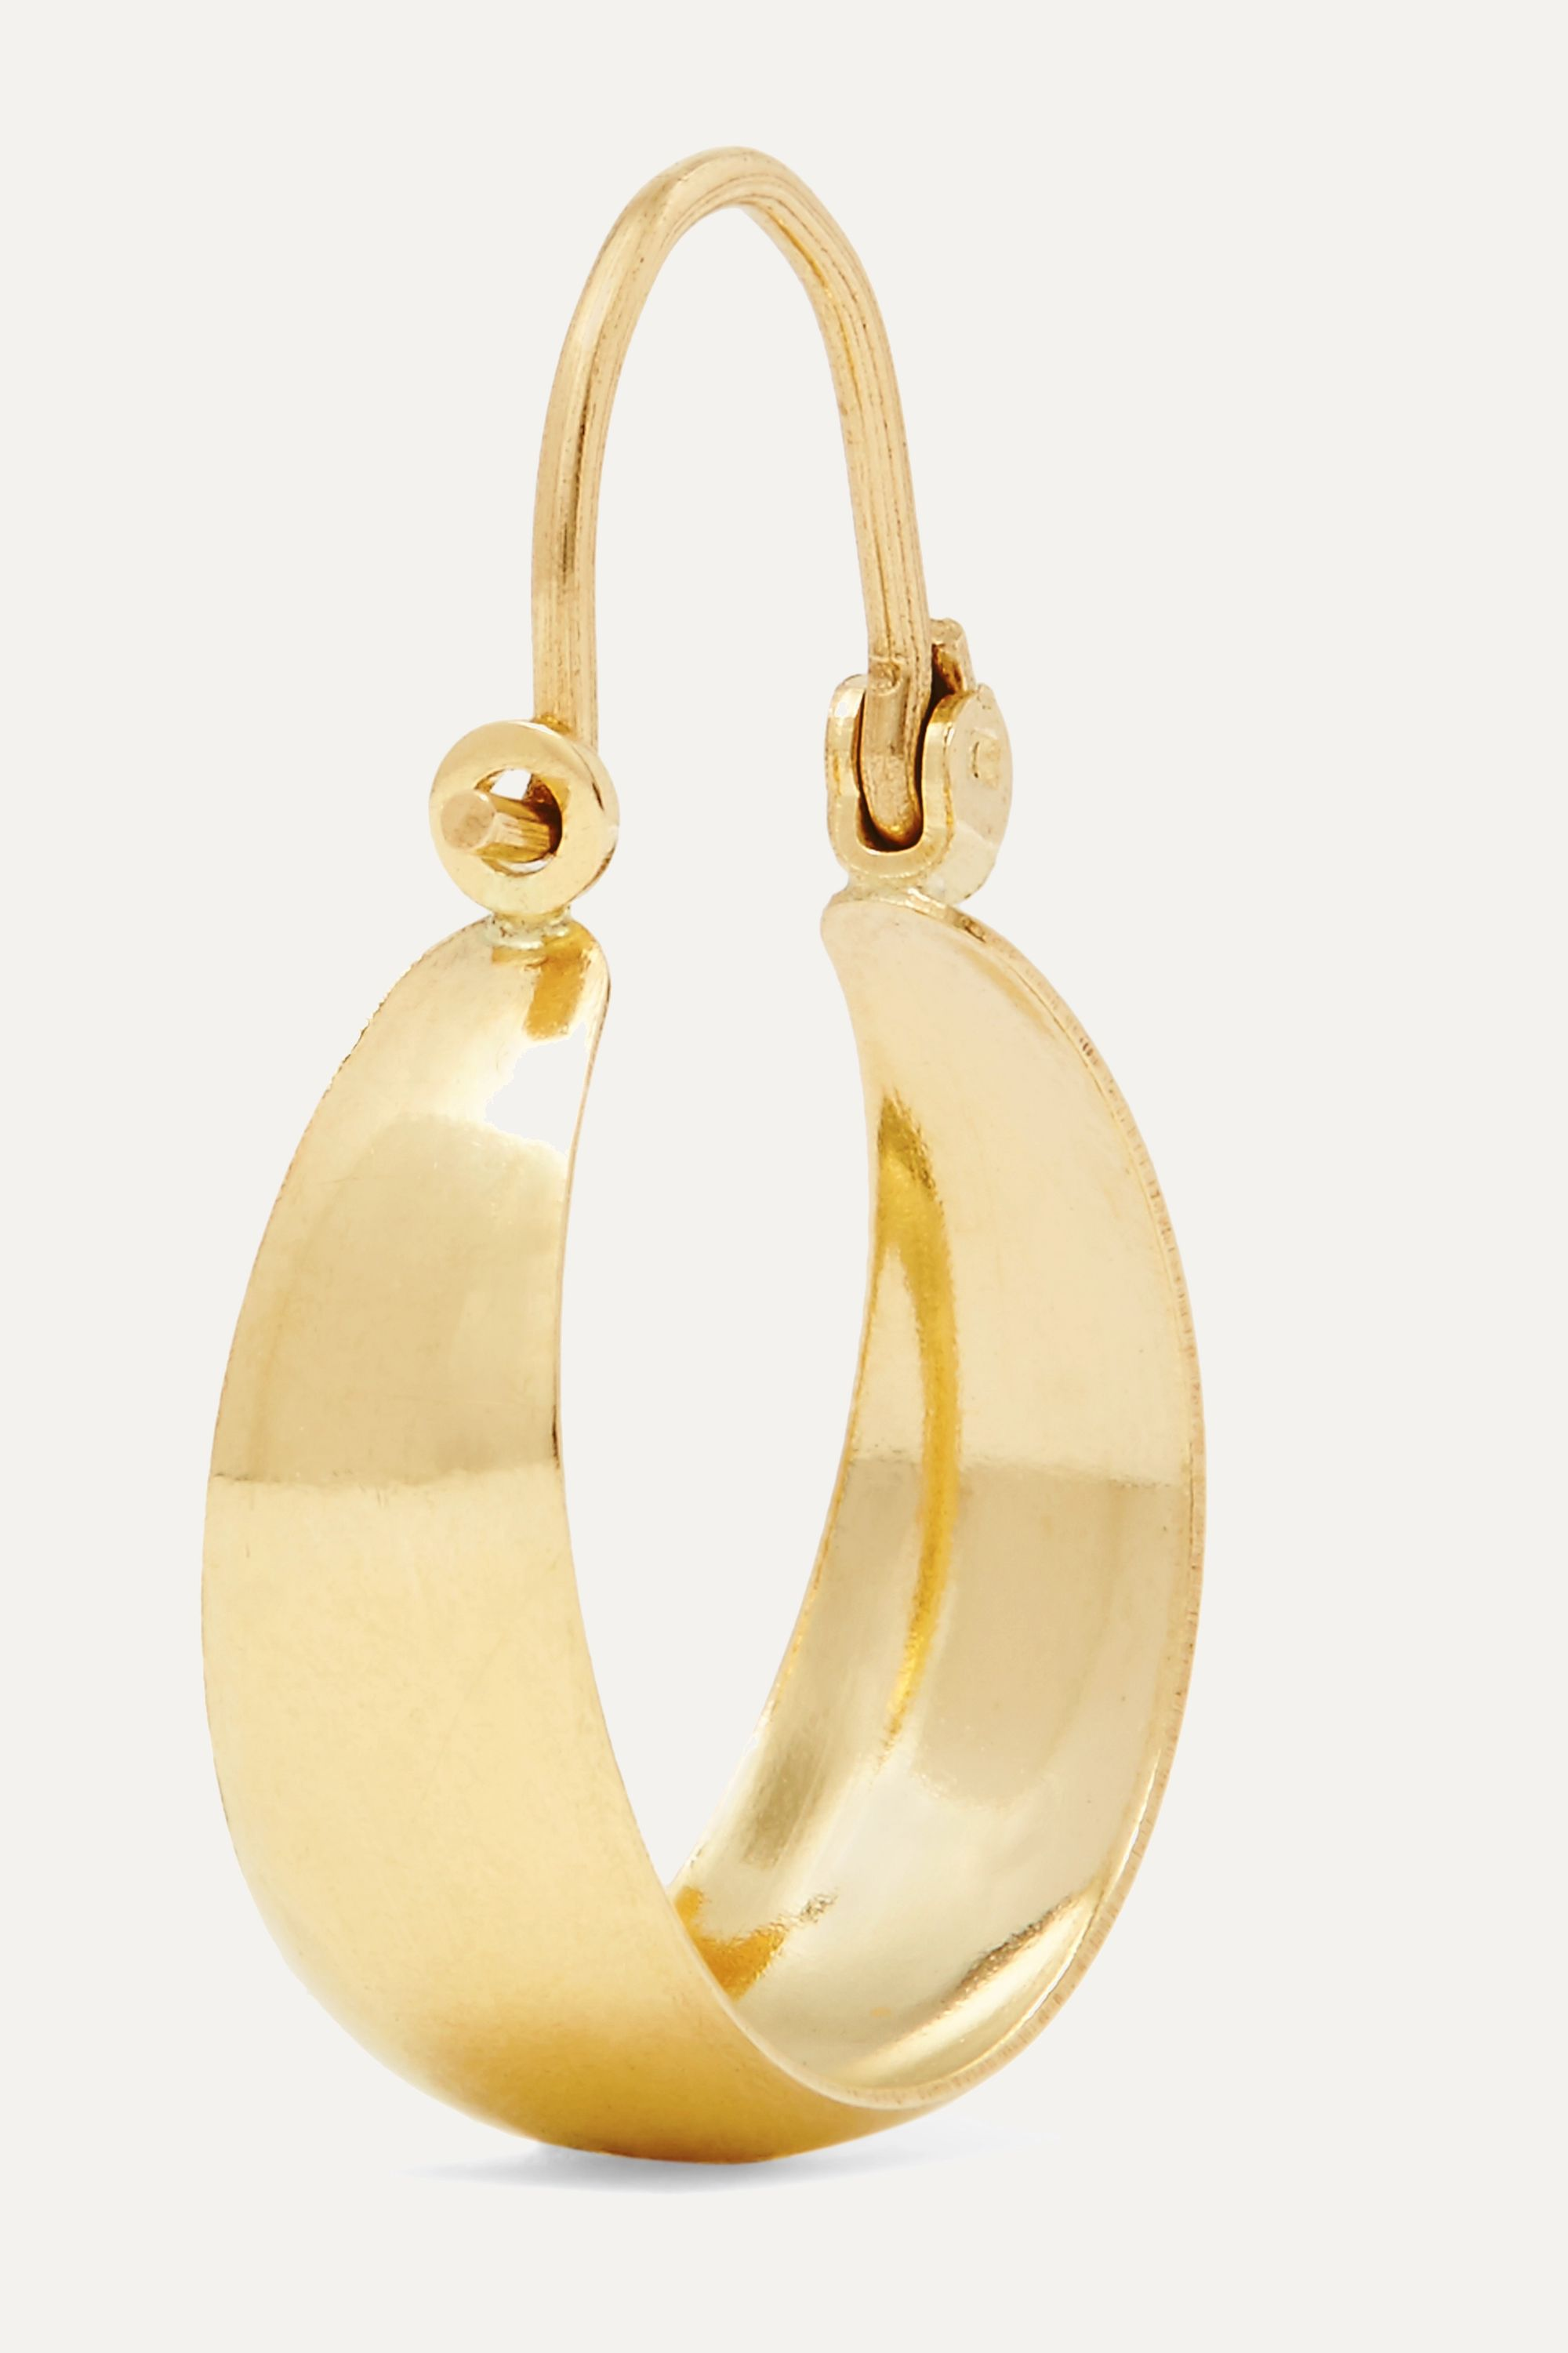 Loren Stewart Mini Hammock 14-karat gold earrings